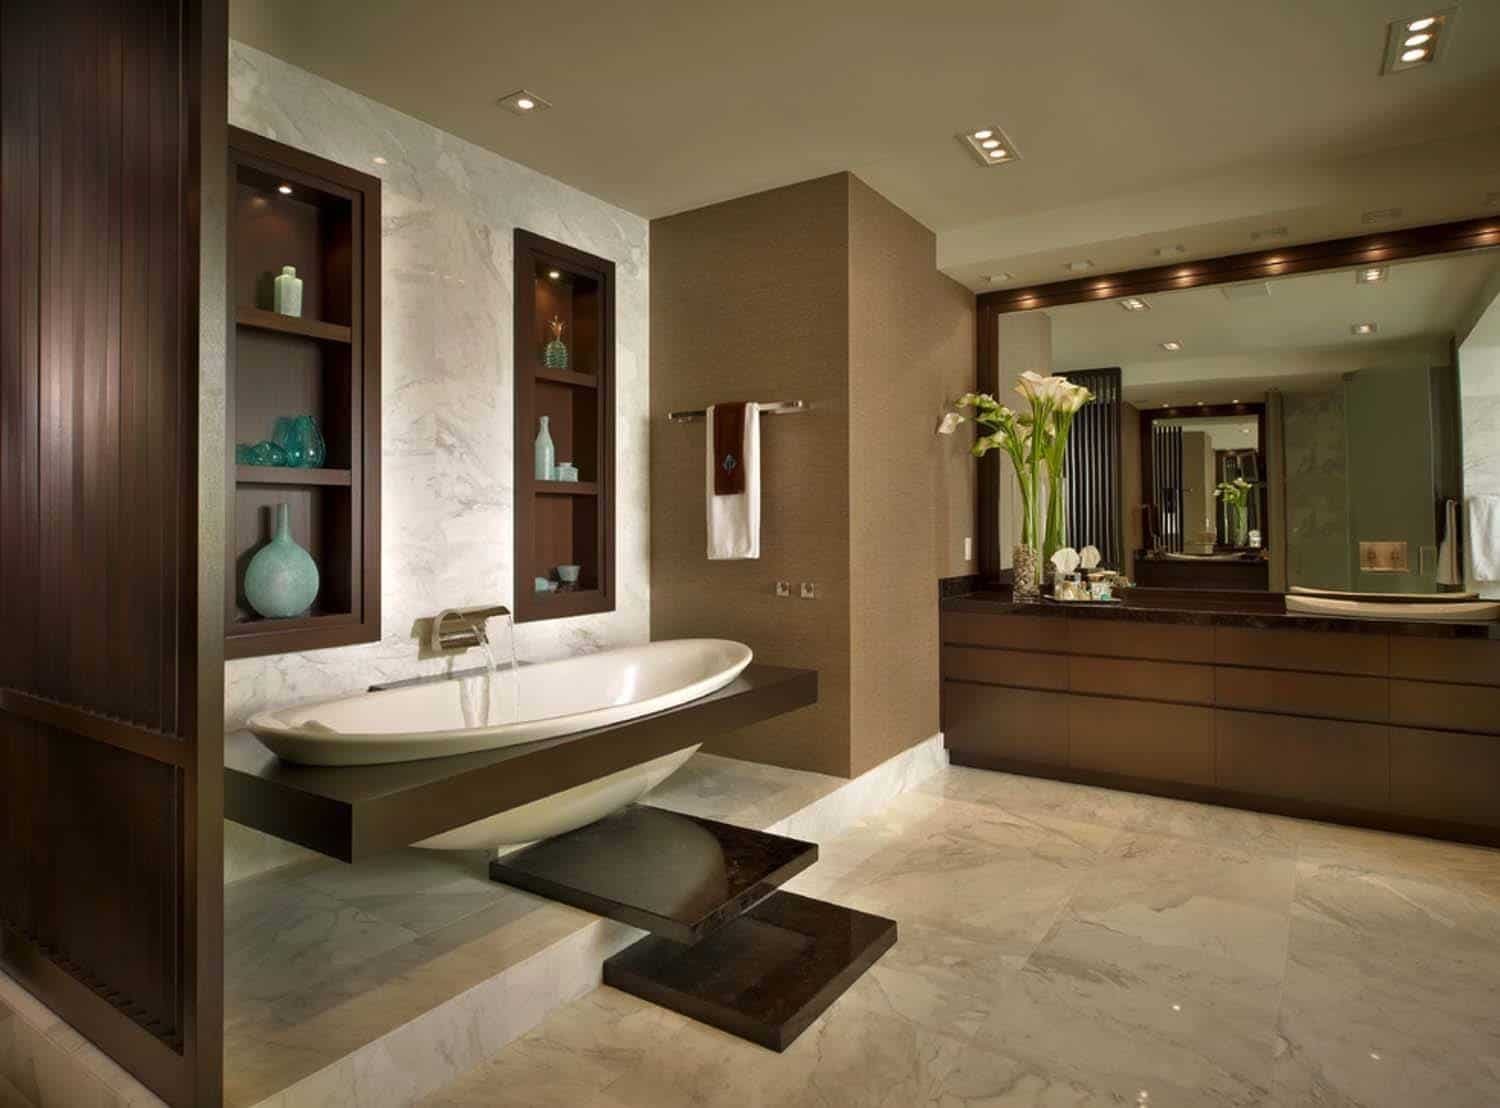 Contemporary Residence-Interiors by Steven G-14-1 Kindesign